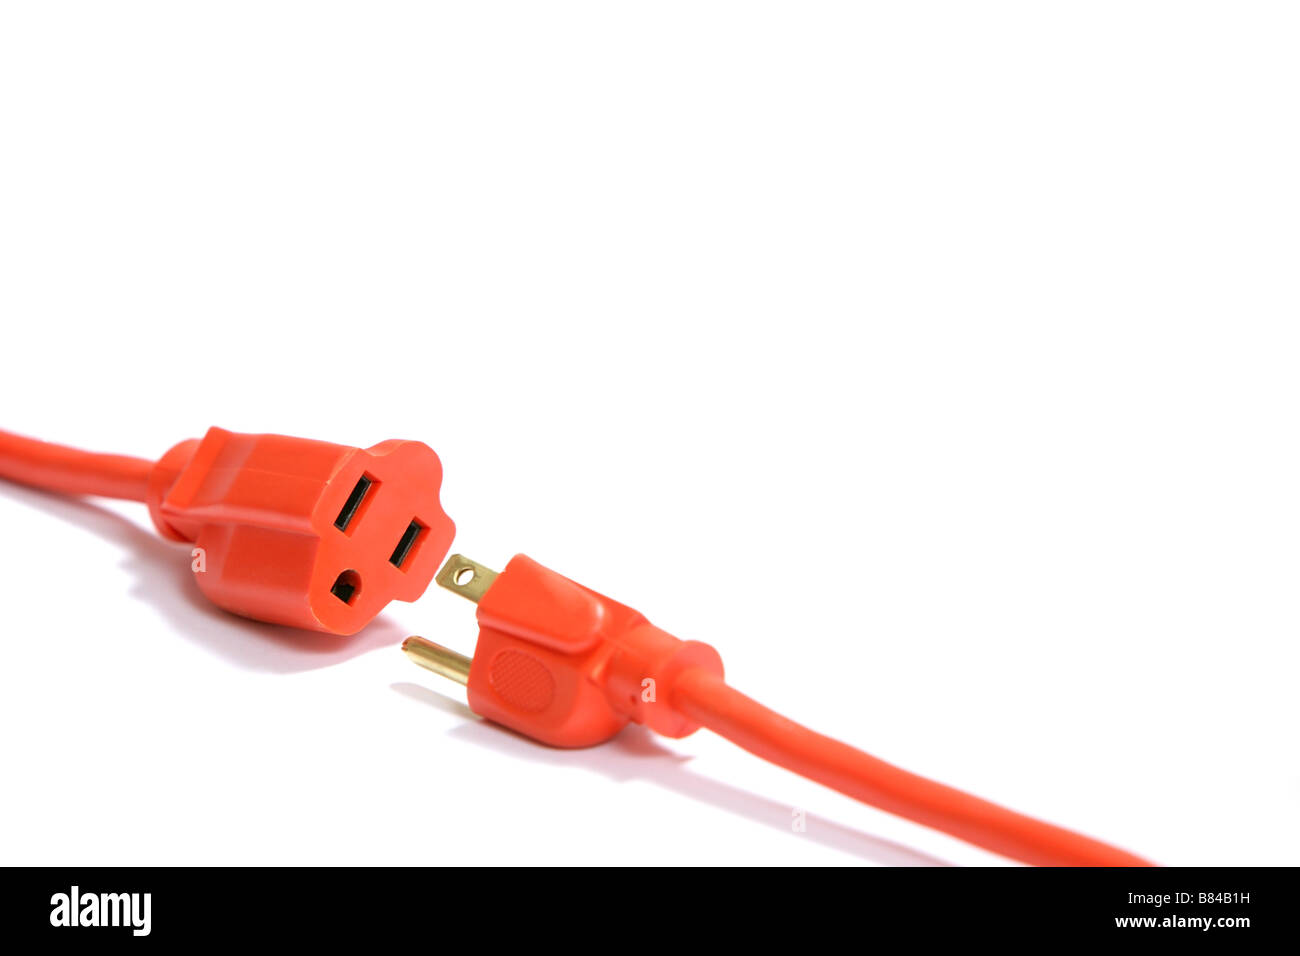 Three Way Plug Stock Photos & Three Way Plug Stock Images - Alamy